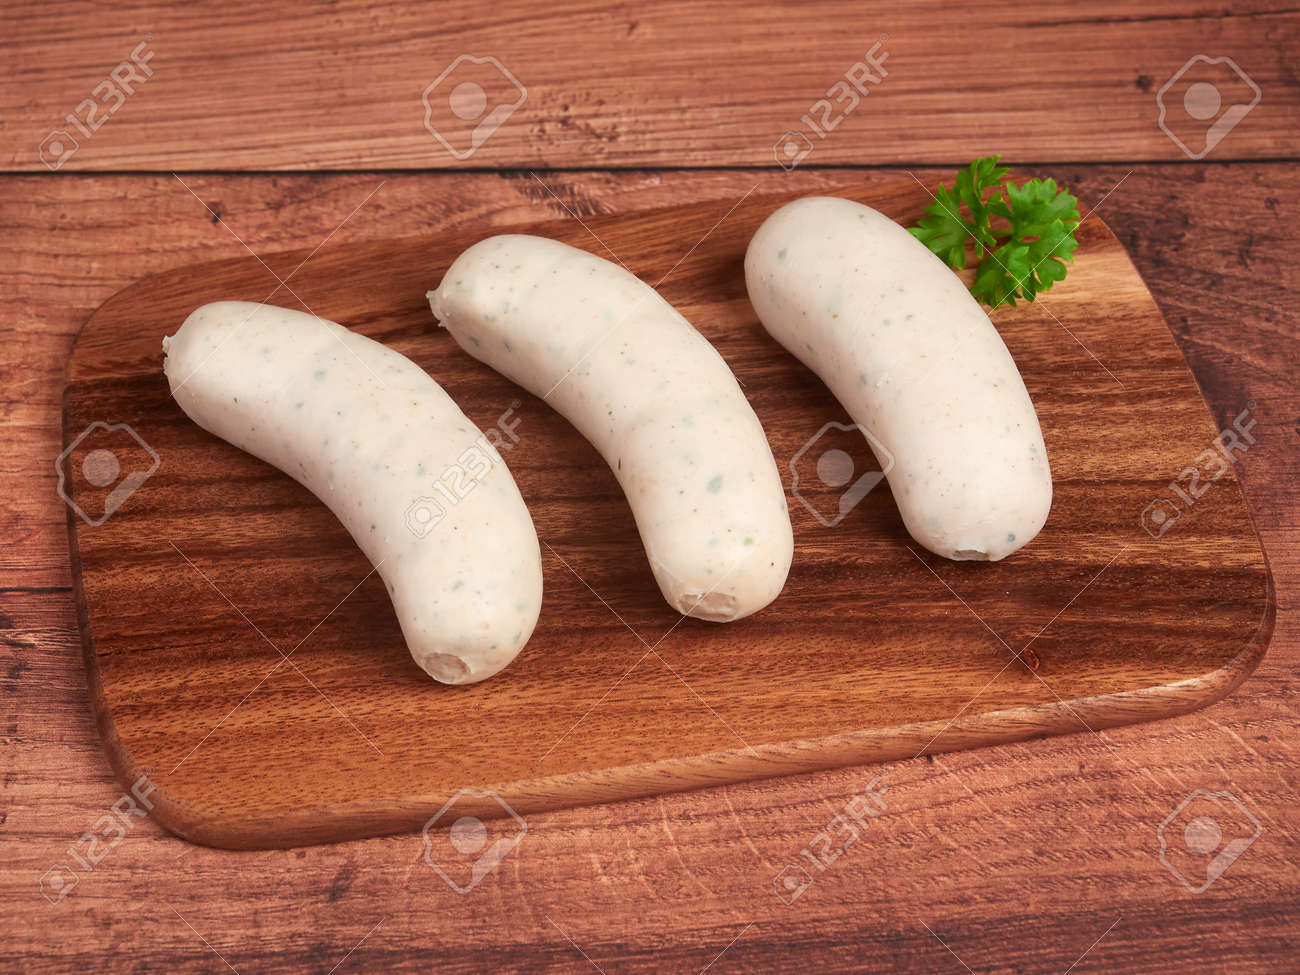 Traditional Bavarian white sausages (weisswurst) on a wooden board - 156154217